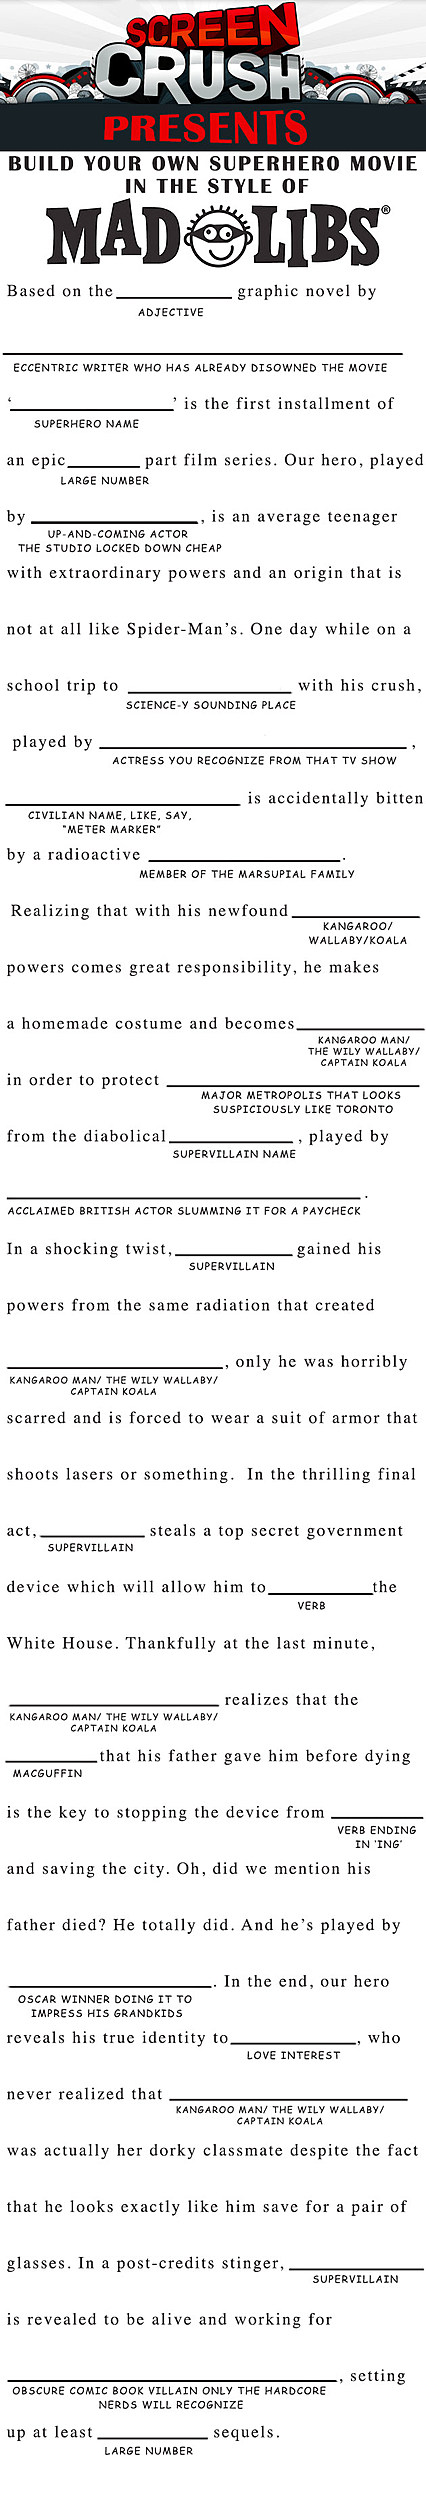 Mad Libs Superhero